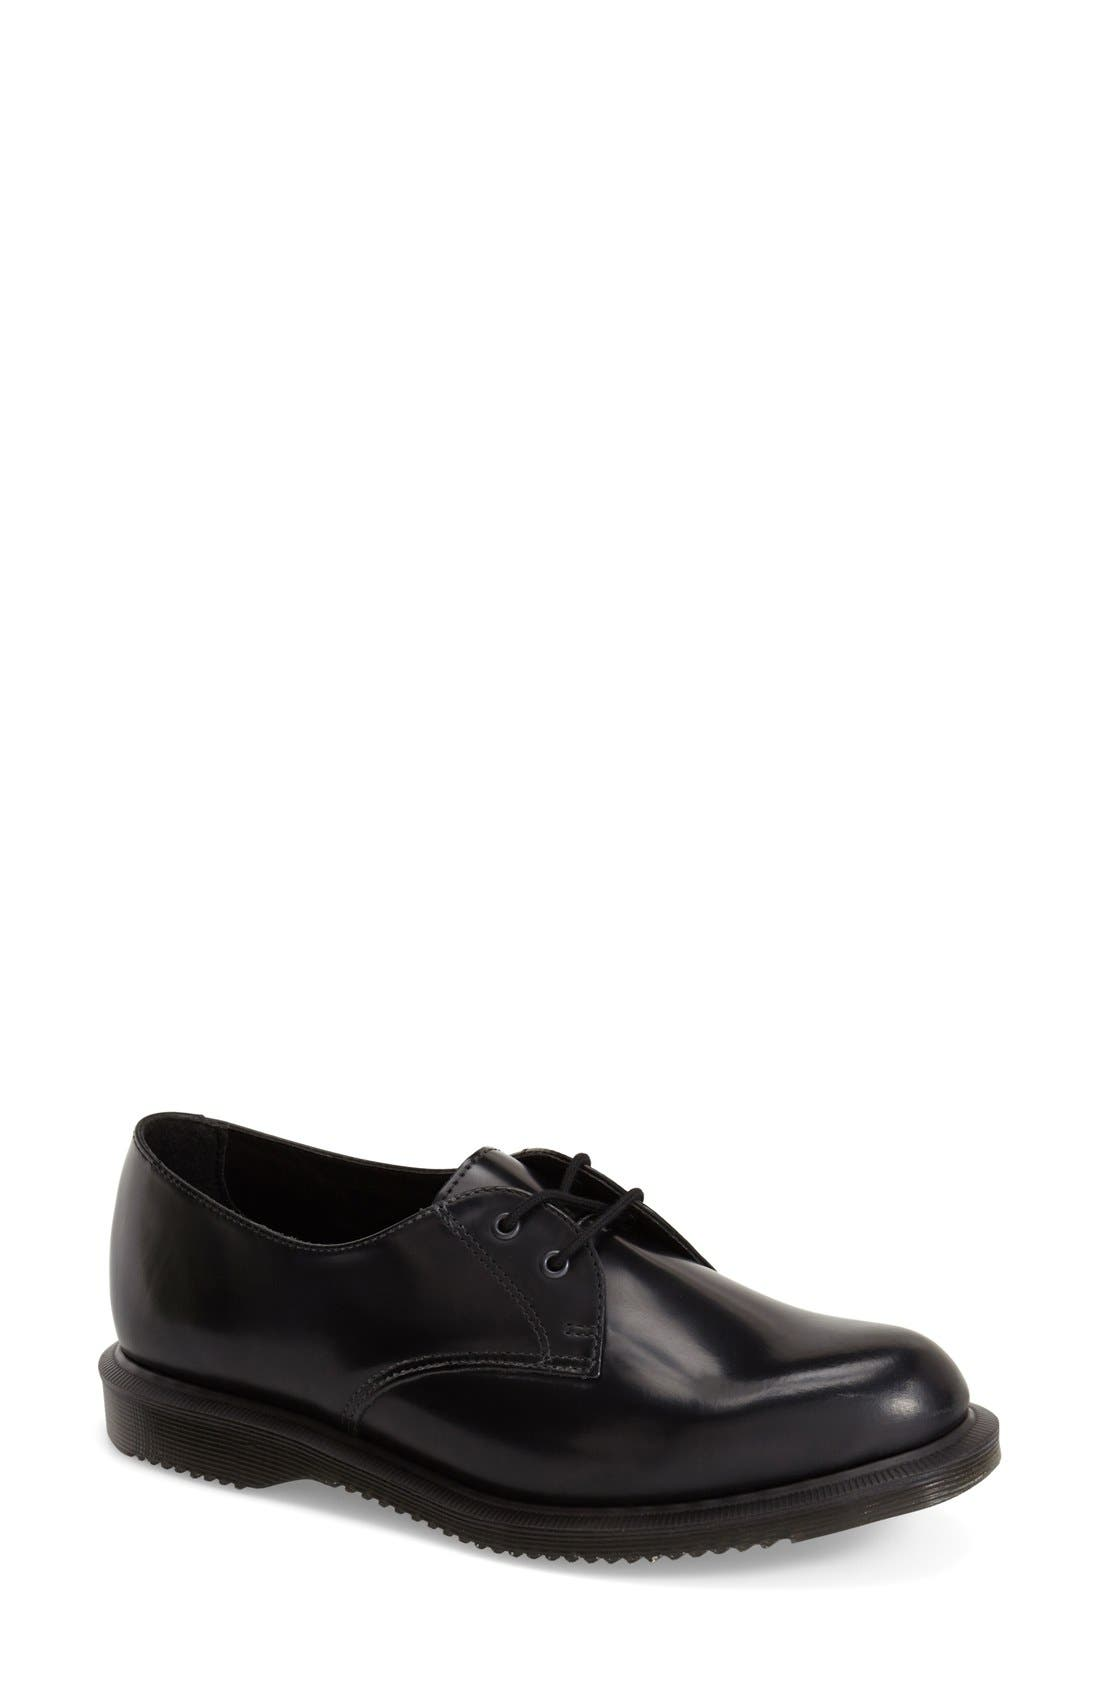 Alternate Image 1 Selected - Dr. Martens 'Brook' Oxford Flat (Women)